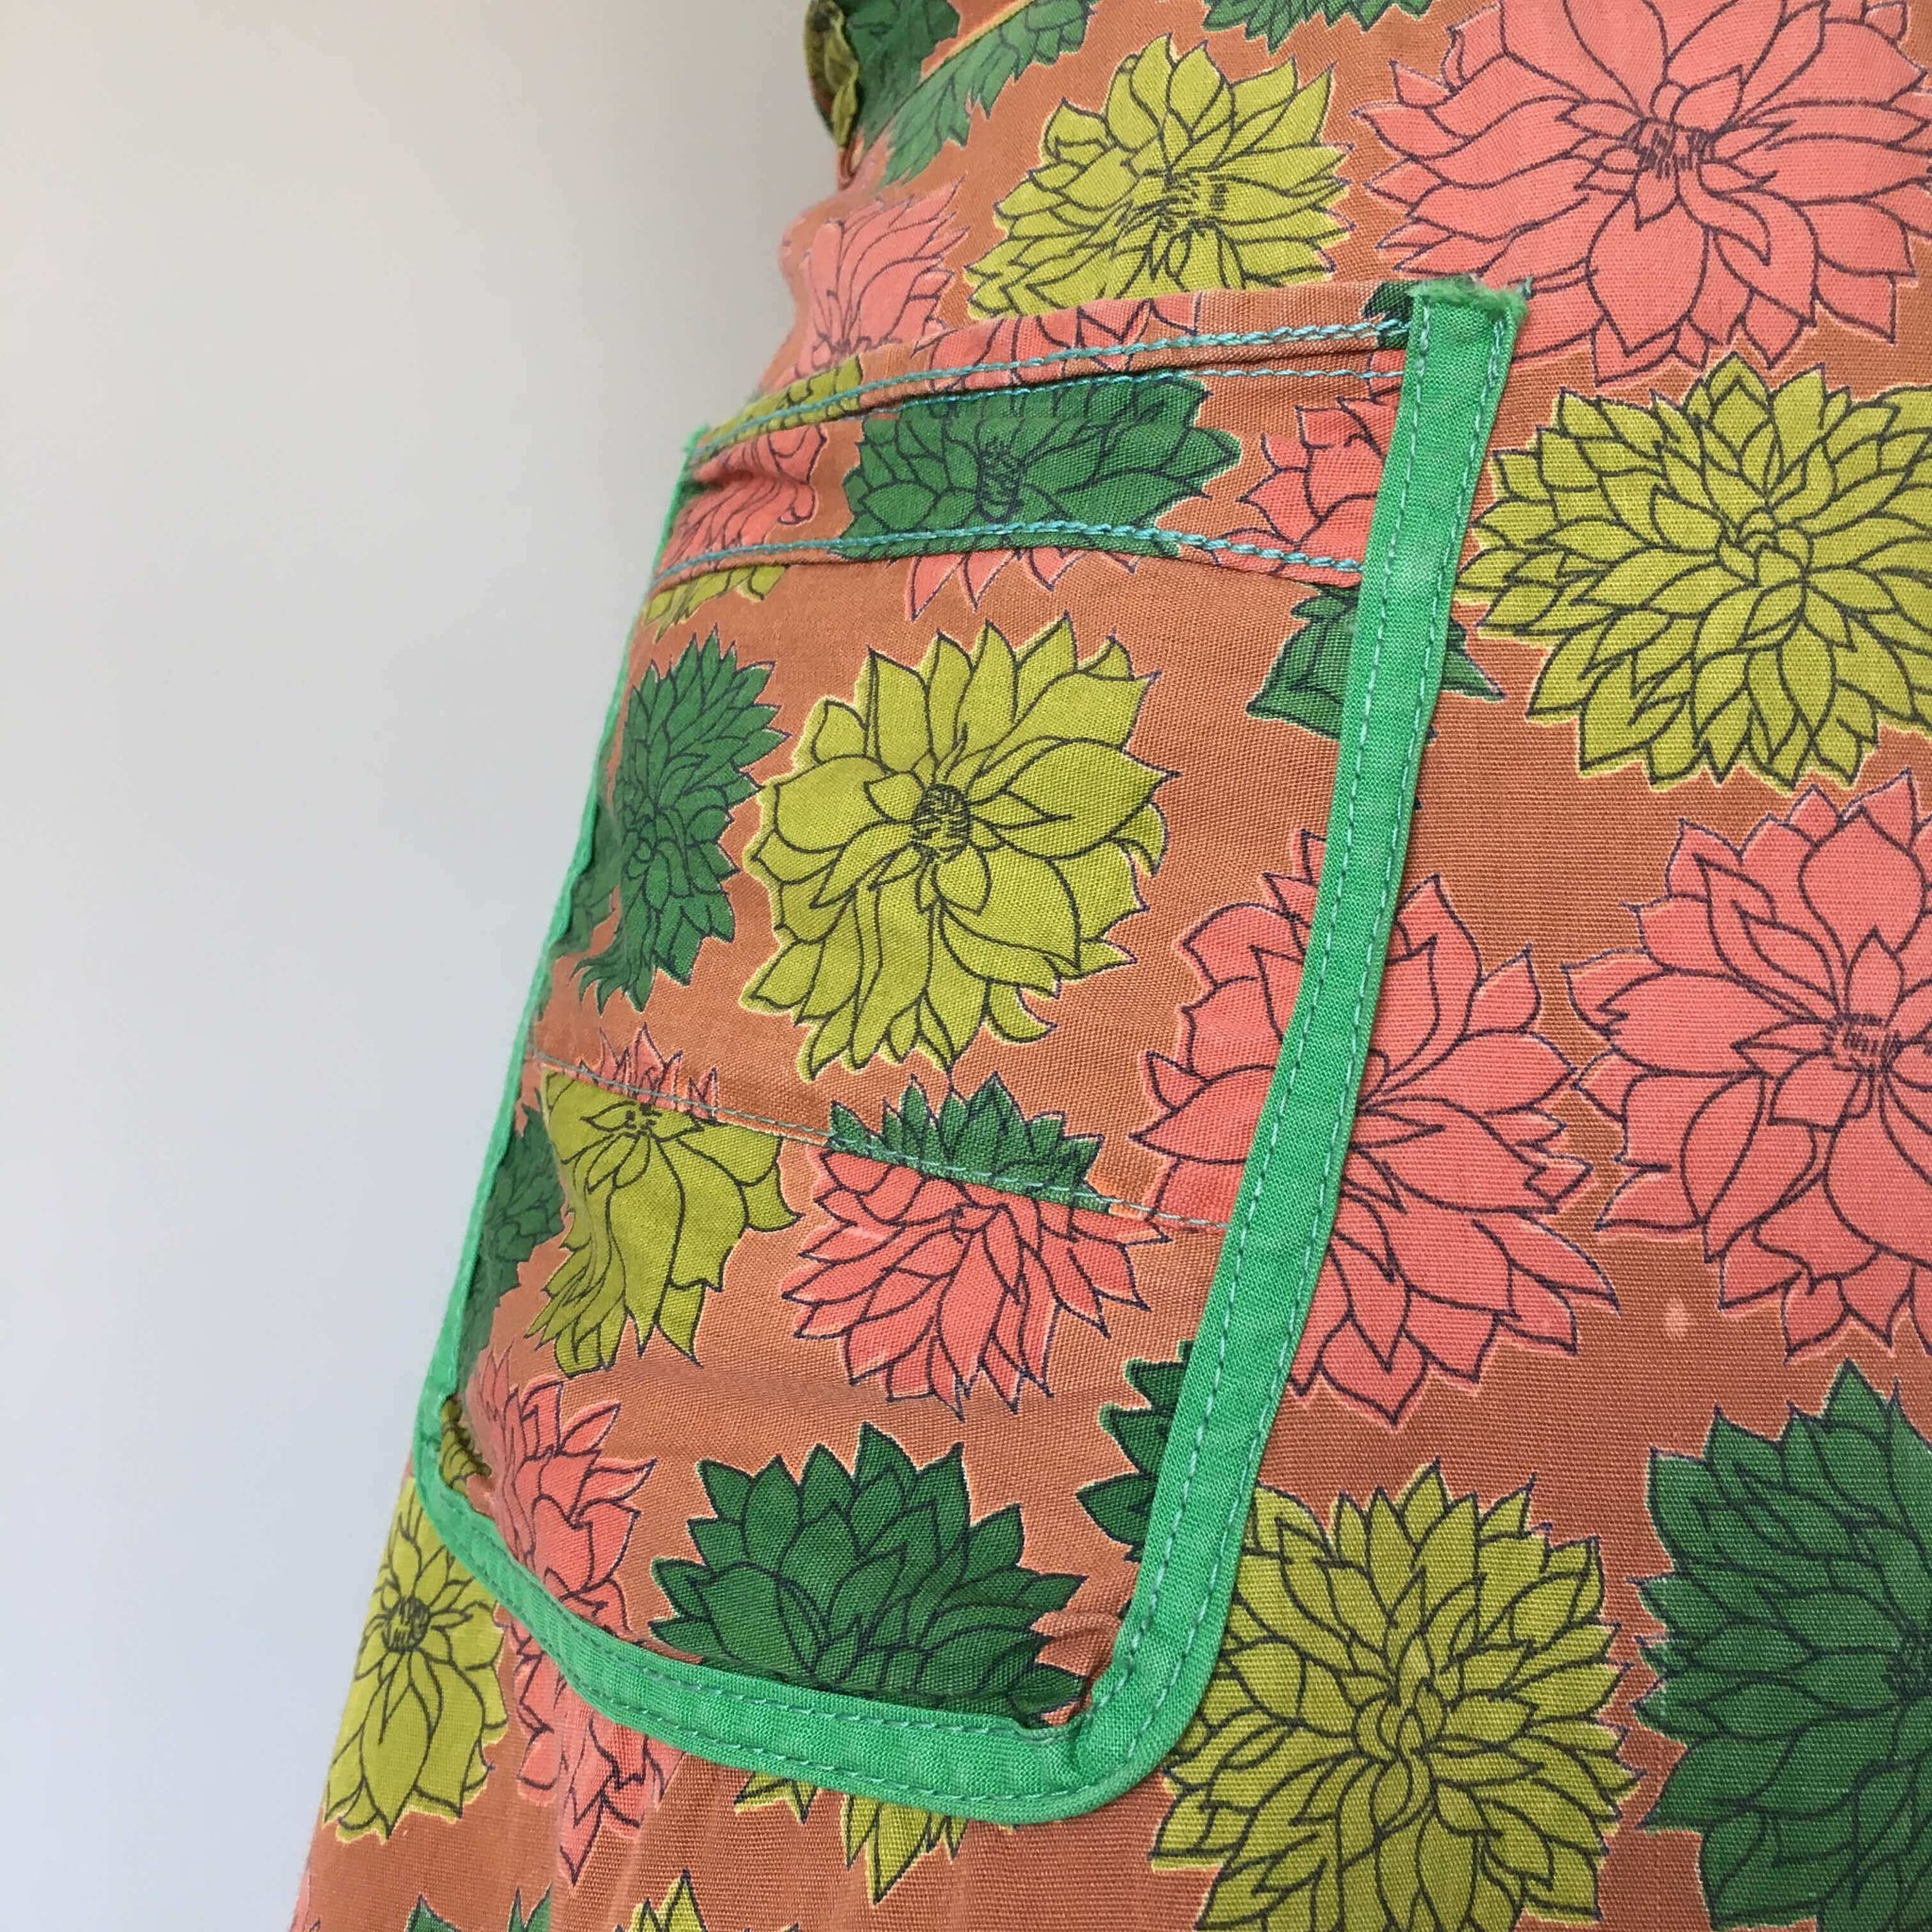 Vintage Brown and Green Floral Half Apron - Dahlia Flower Succulent Style Pattern